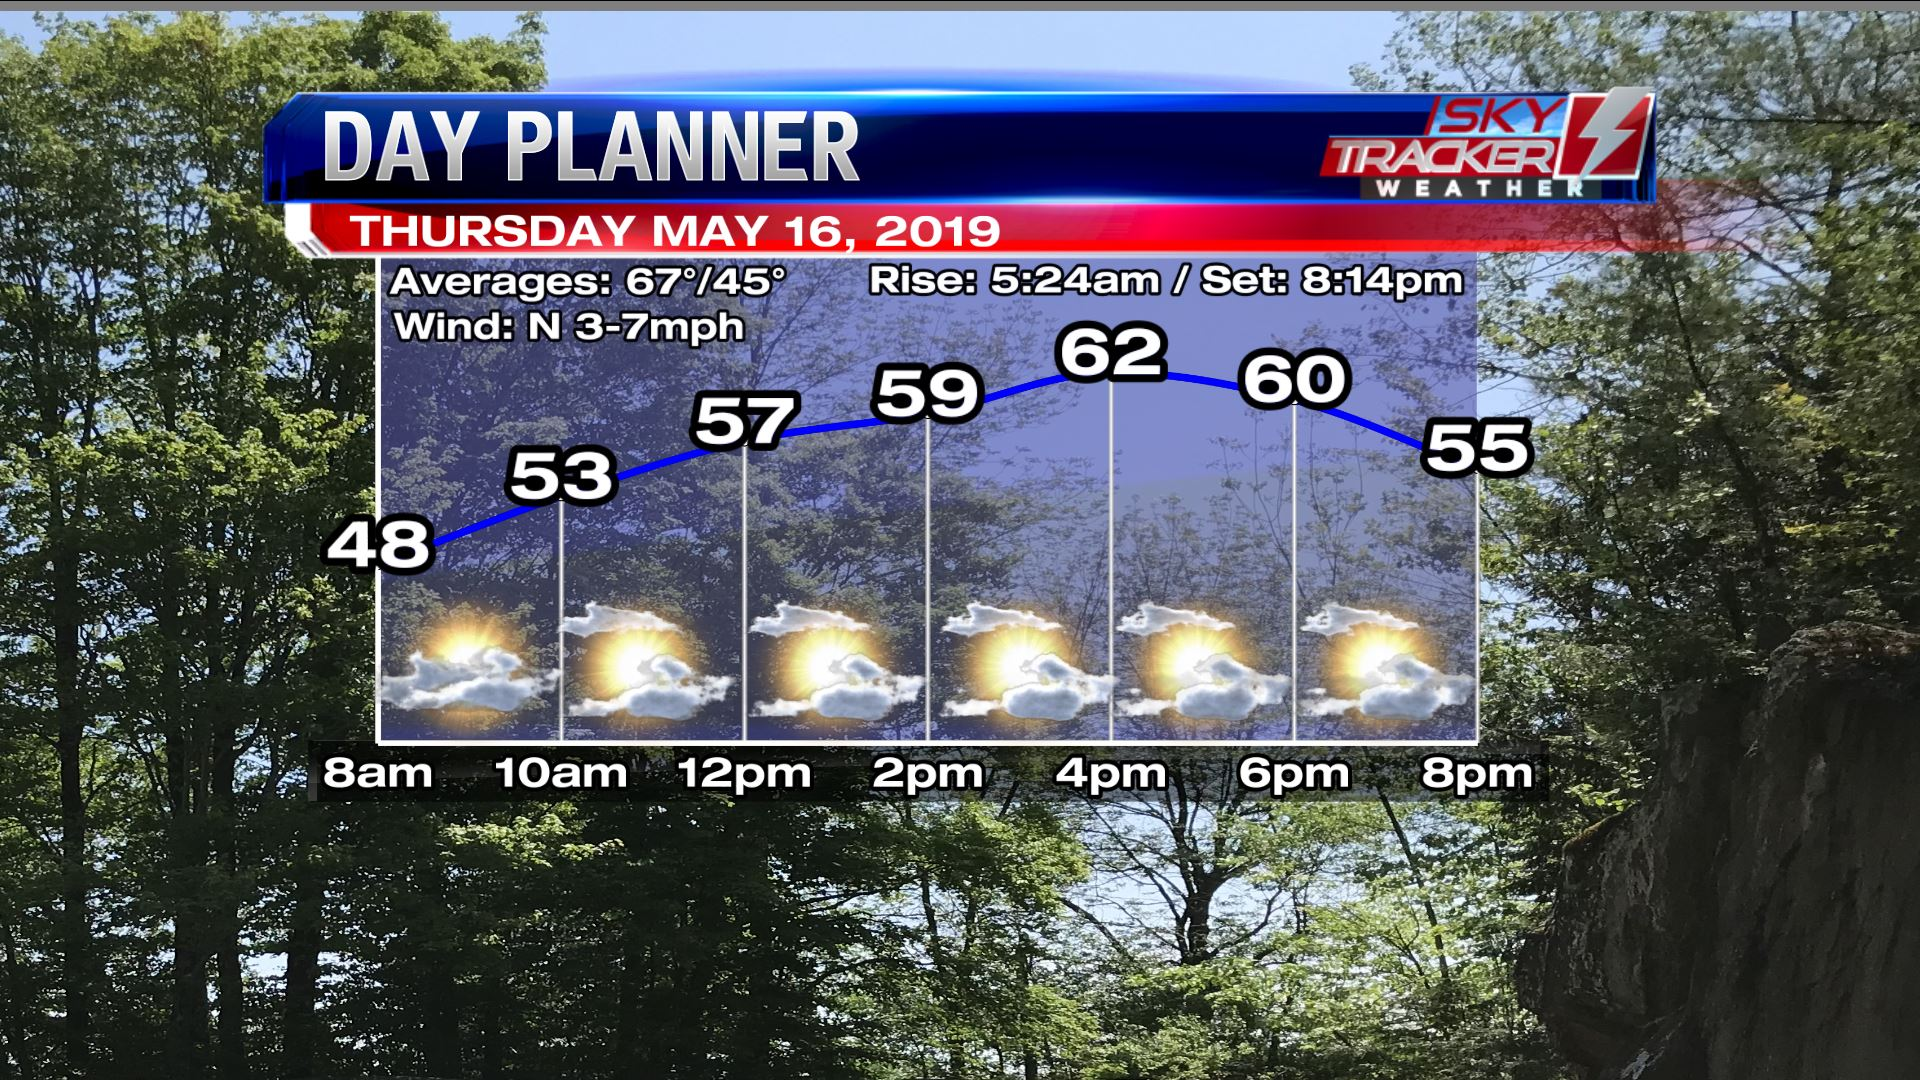 Planner for Thursday May 16 2019